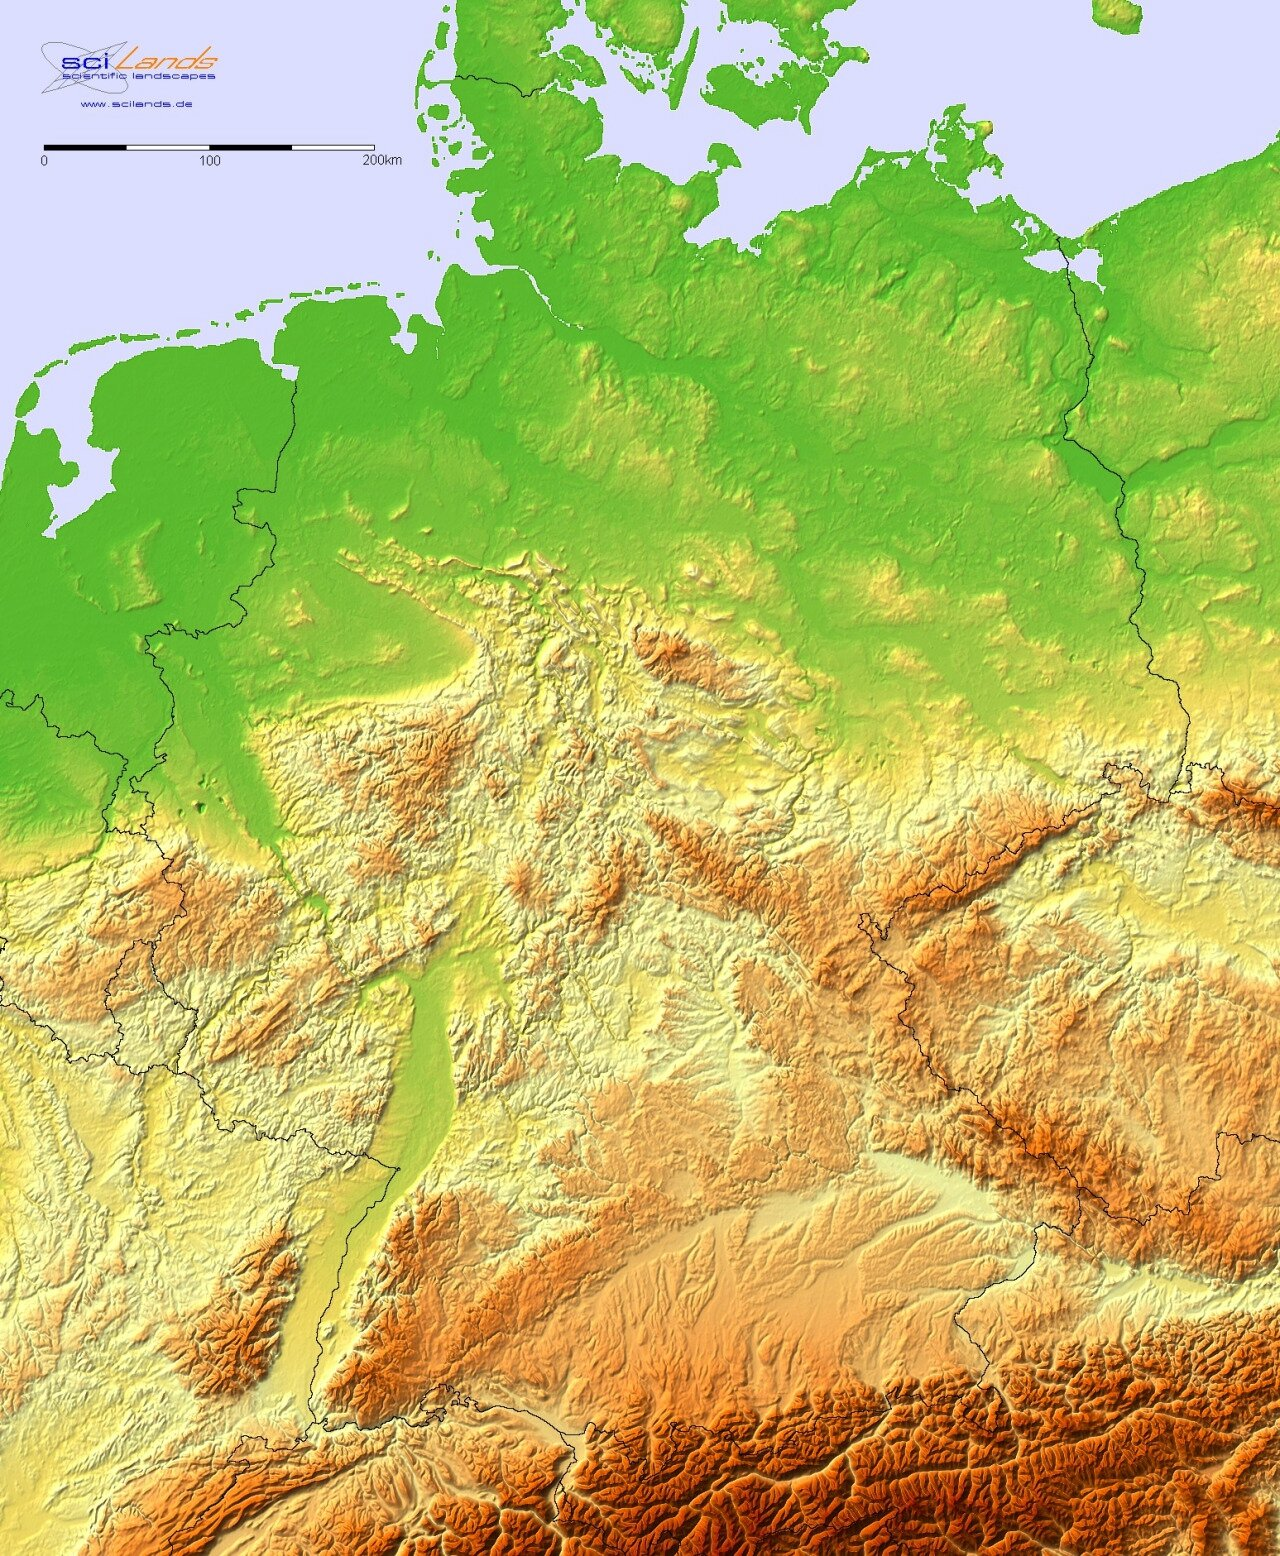 allemagne-Topographic hillshade map of Germany